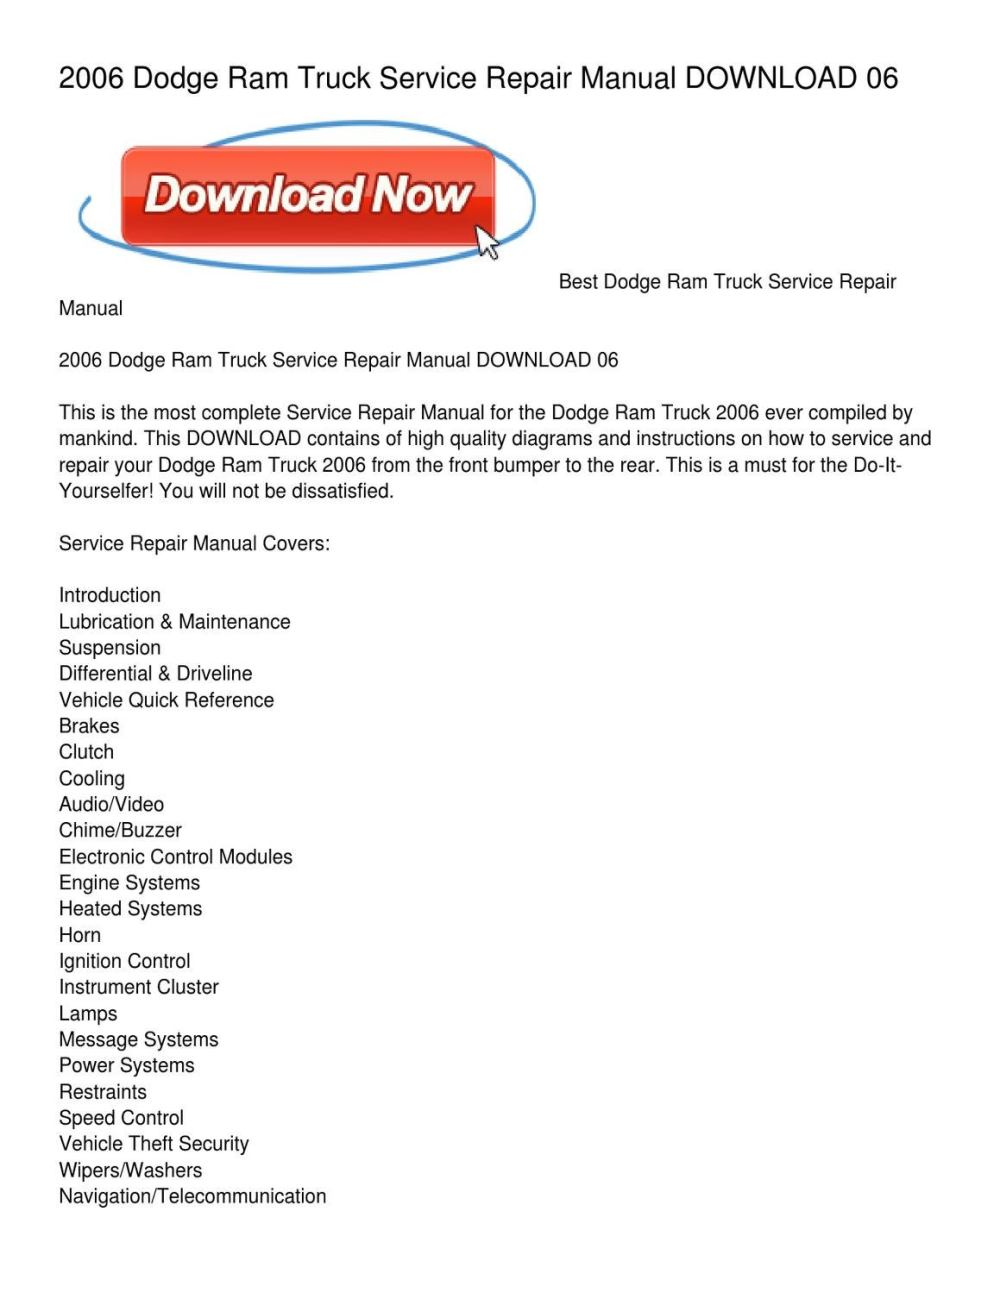 medium resolution of 2006 dodge ram truck service repair manual download 06 by wanda seamon issuu